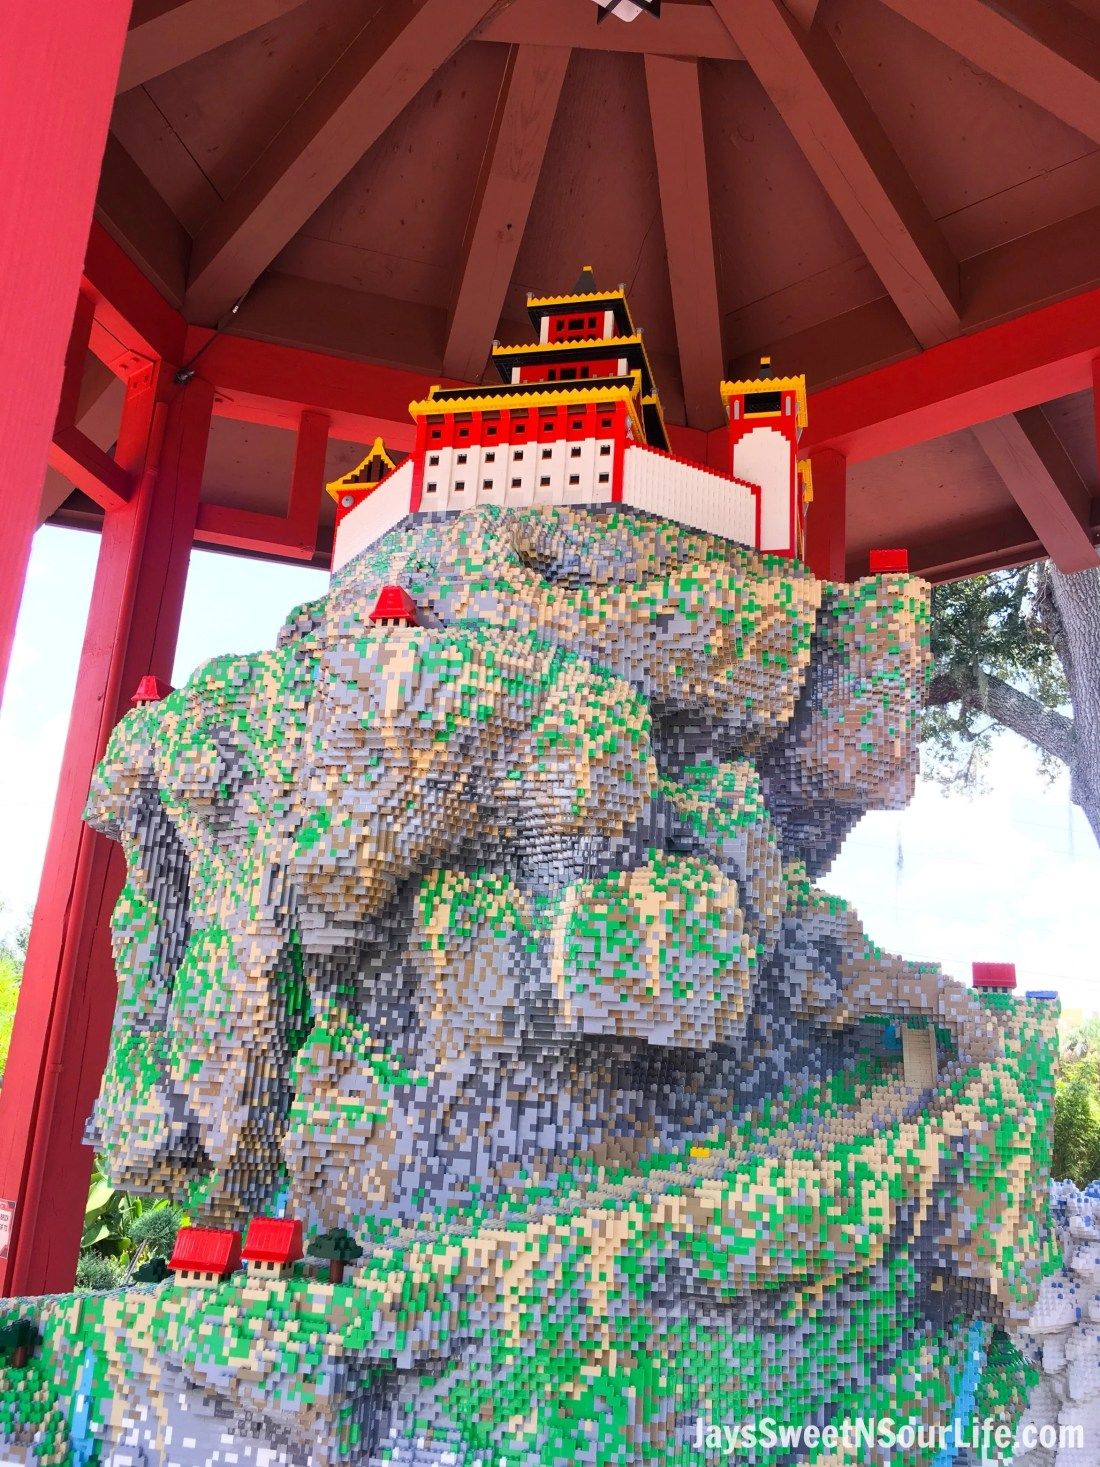 Legoland Florida Ninjago World Zanes Temple Build. Spend your summer building memories at Legoland in Florida. There is something for the whole family to enjoy at this wonderful Theme Park.